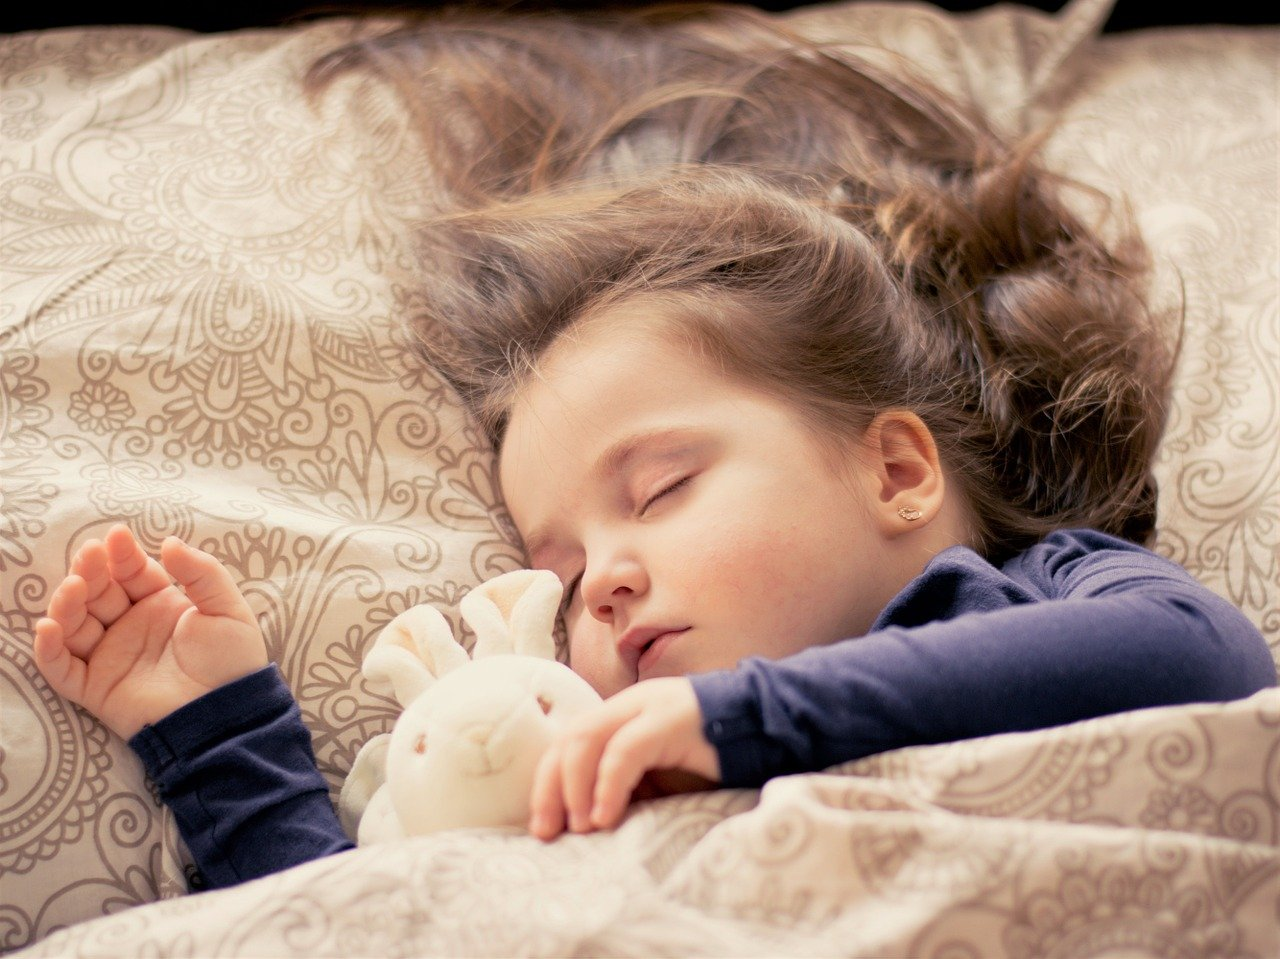 It's normal for your child's sleep pattern to be disrupted during a growth spurt.